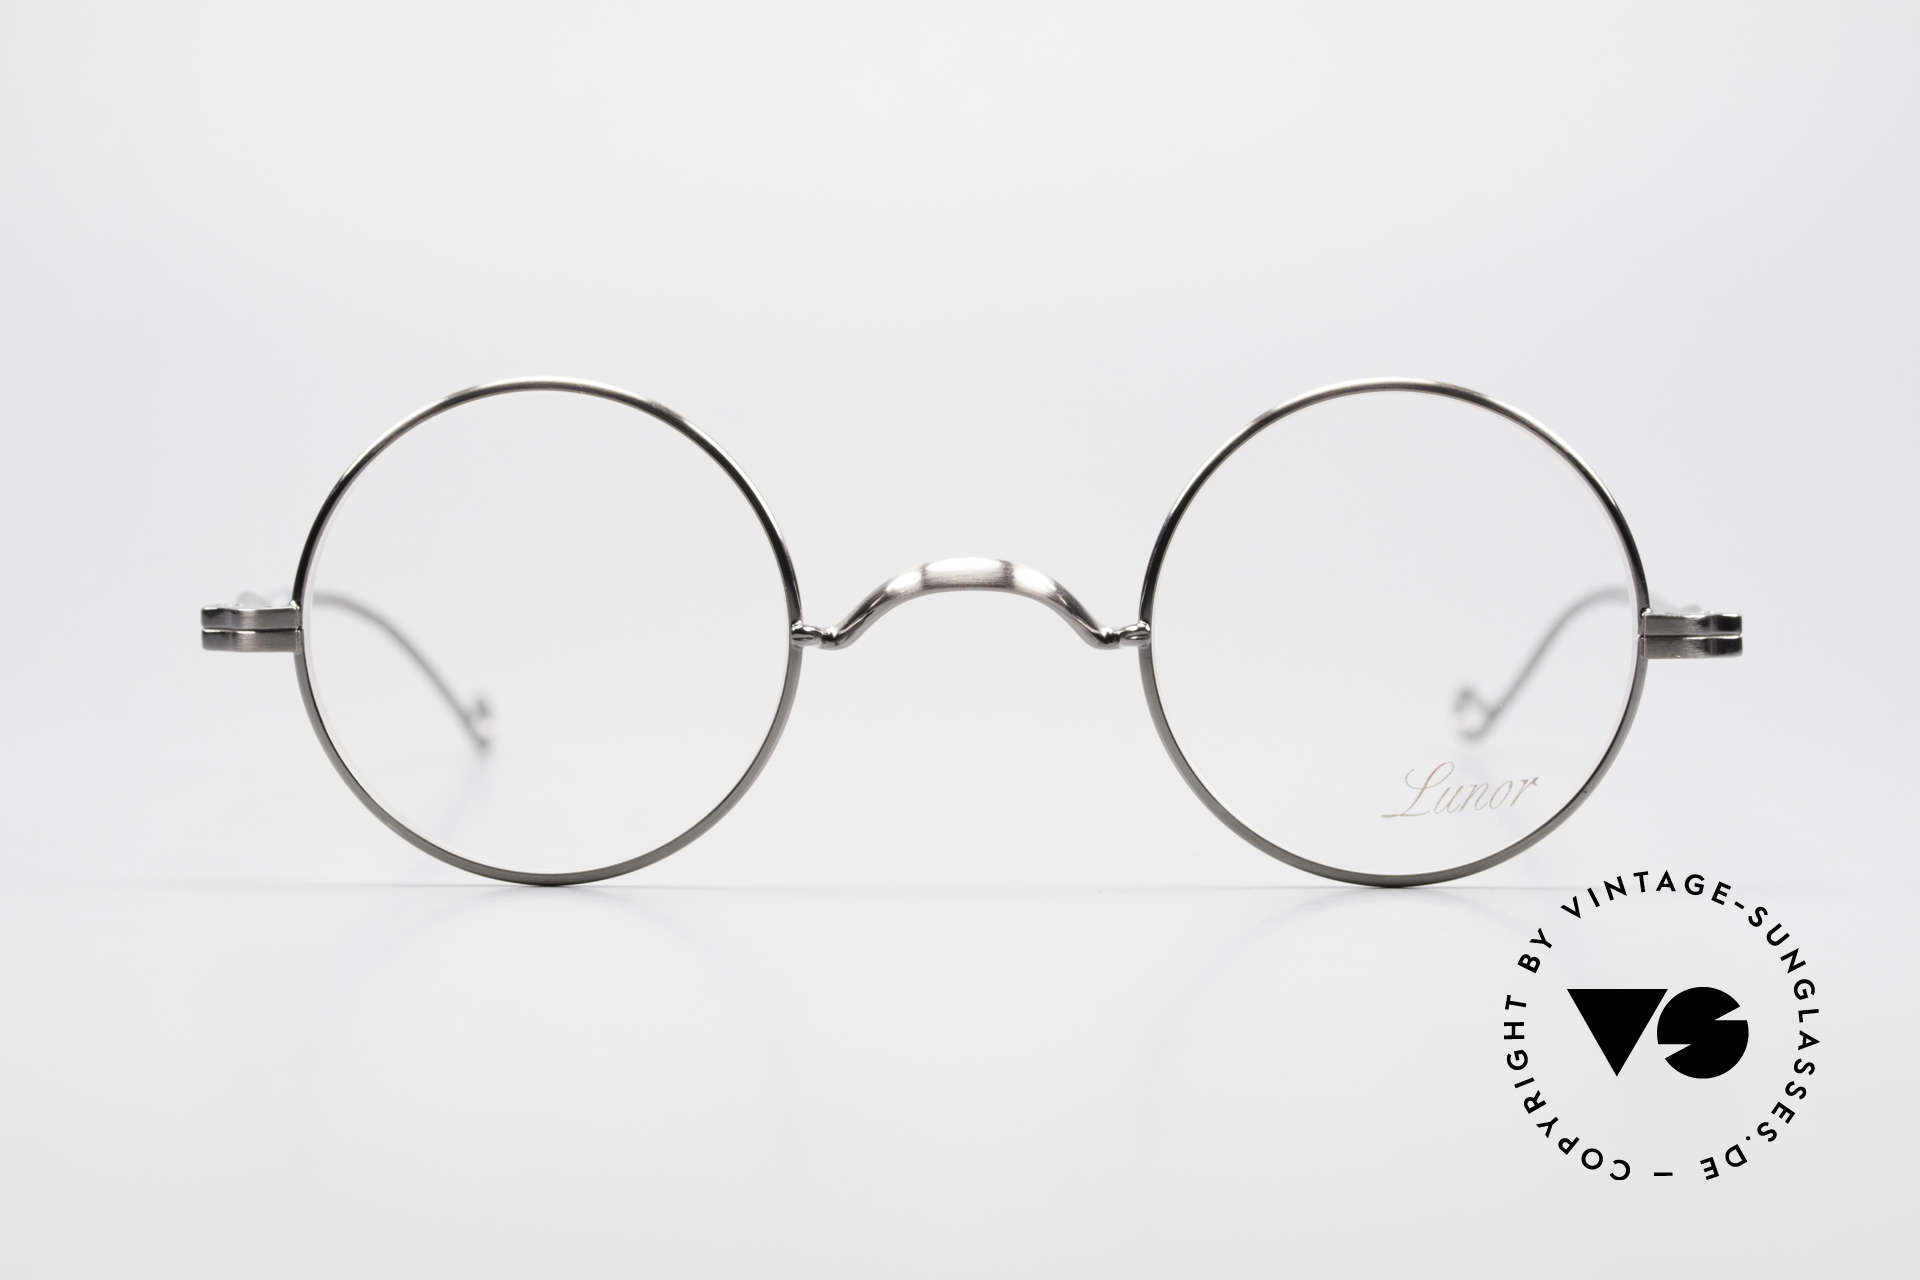 Lunor II 12 Small Round Luxury Glasses, traditional German brand; quality handmade in Germany, Made for Men and Women